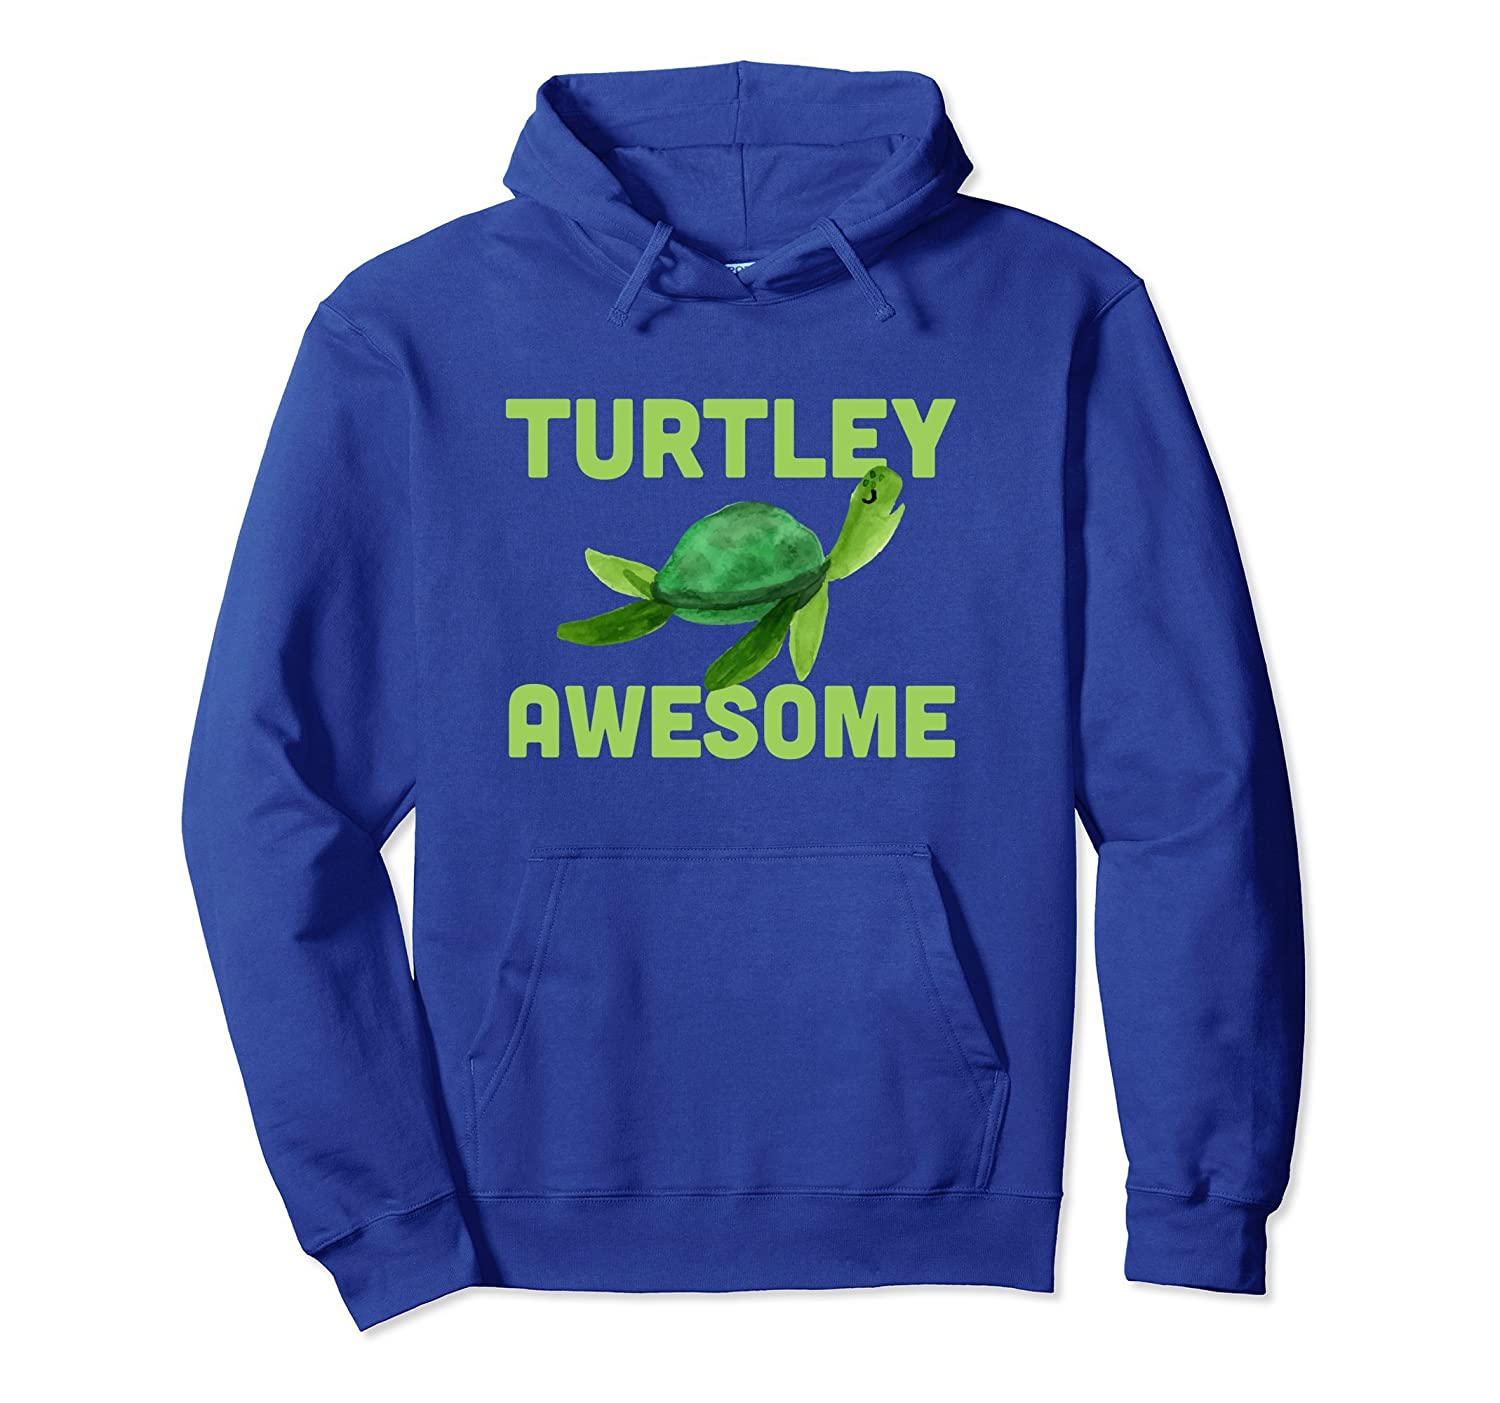 Turtley Awesome Shirt - Funny Turtle Hoodie-ANZ